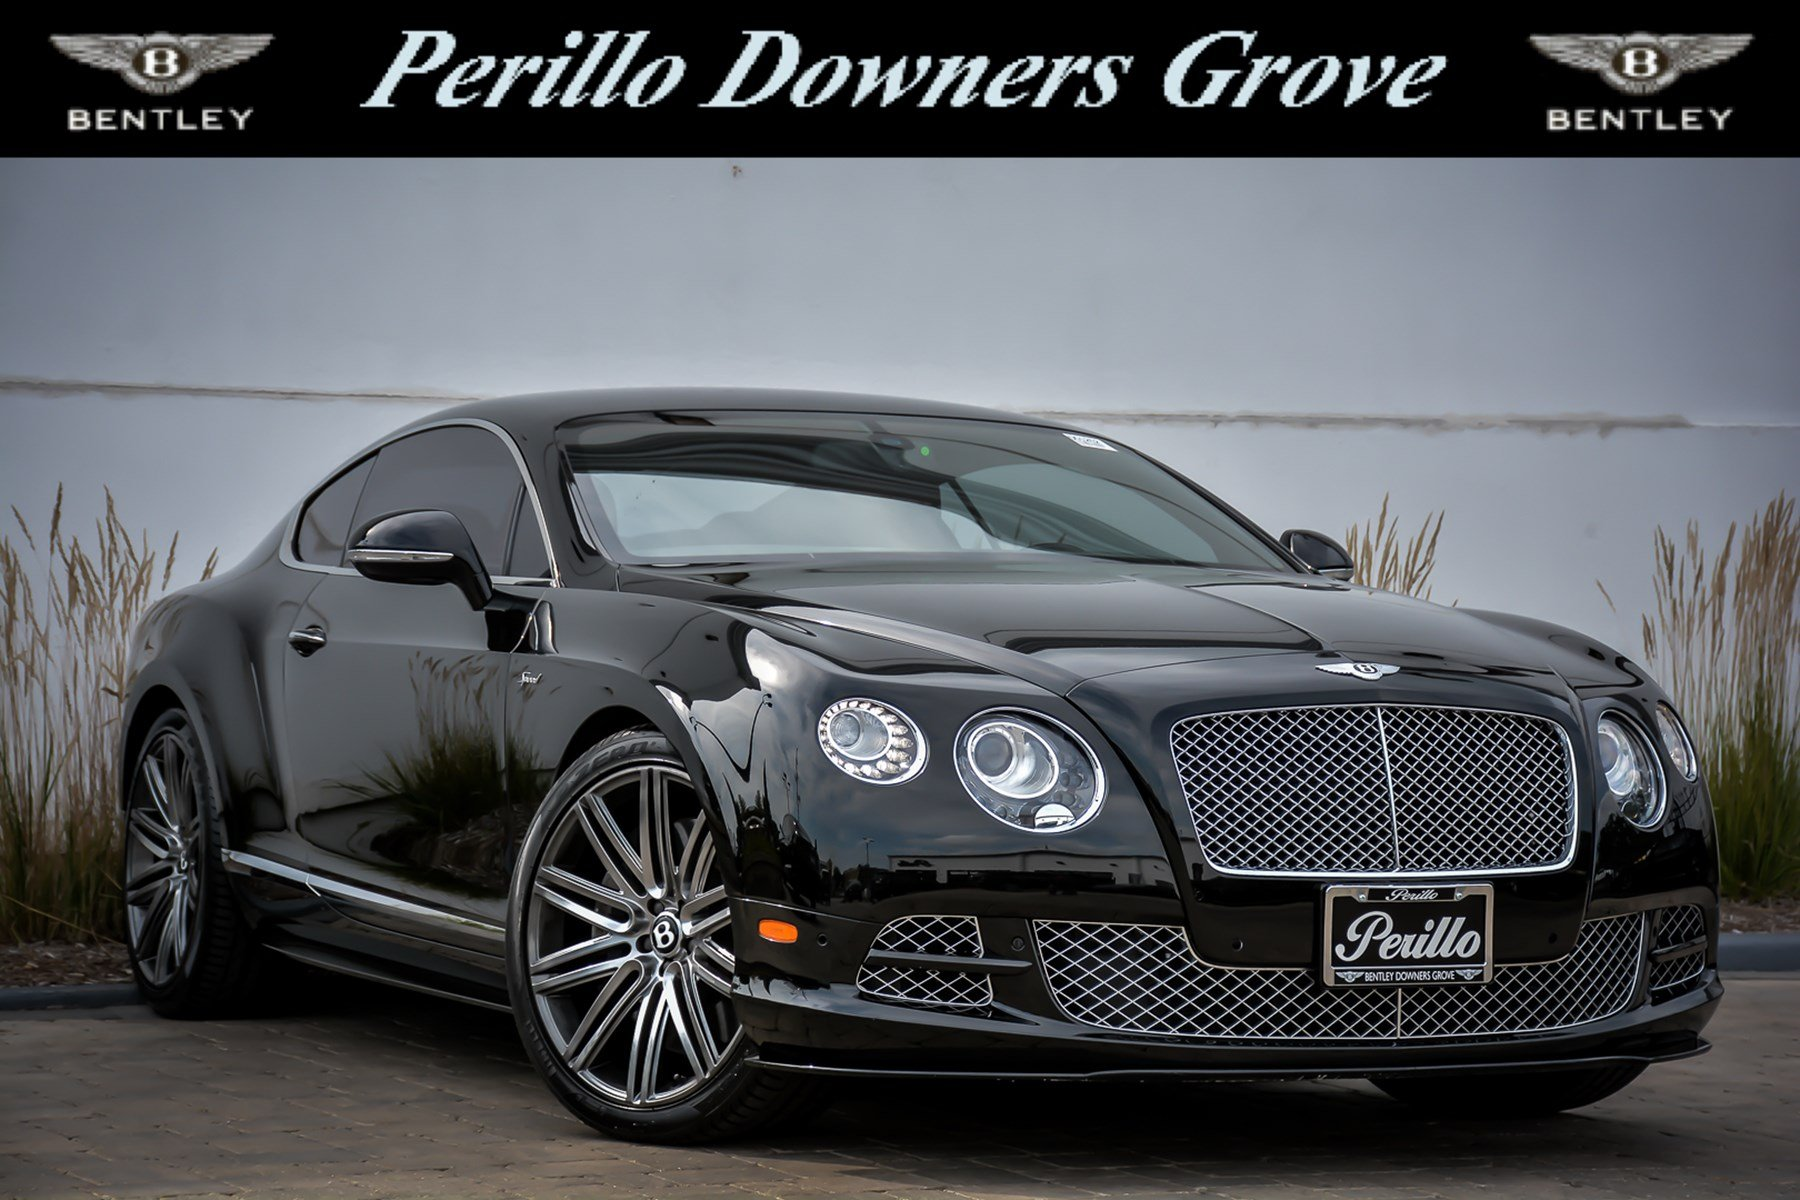 Pre Owned 2015 Bentley Continental GT Speed Mulliner 2dr Car in